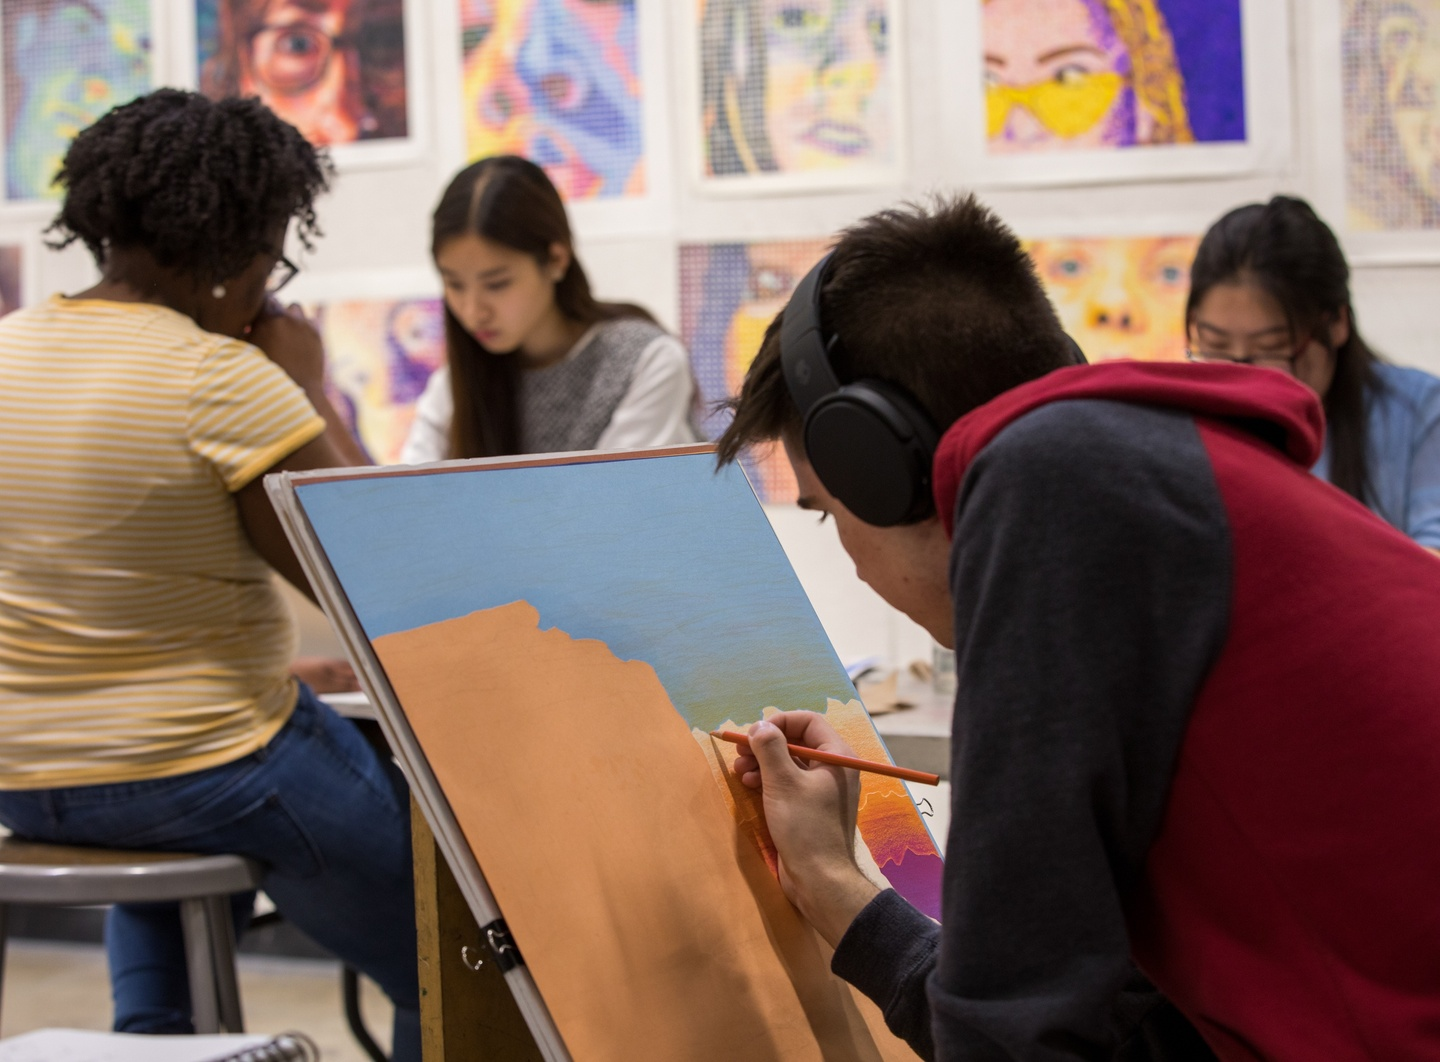 Person in headphones bends over a painting of a desert landscape. Several other people work in the background. The wall is hung with colorful portrait drawings.